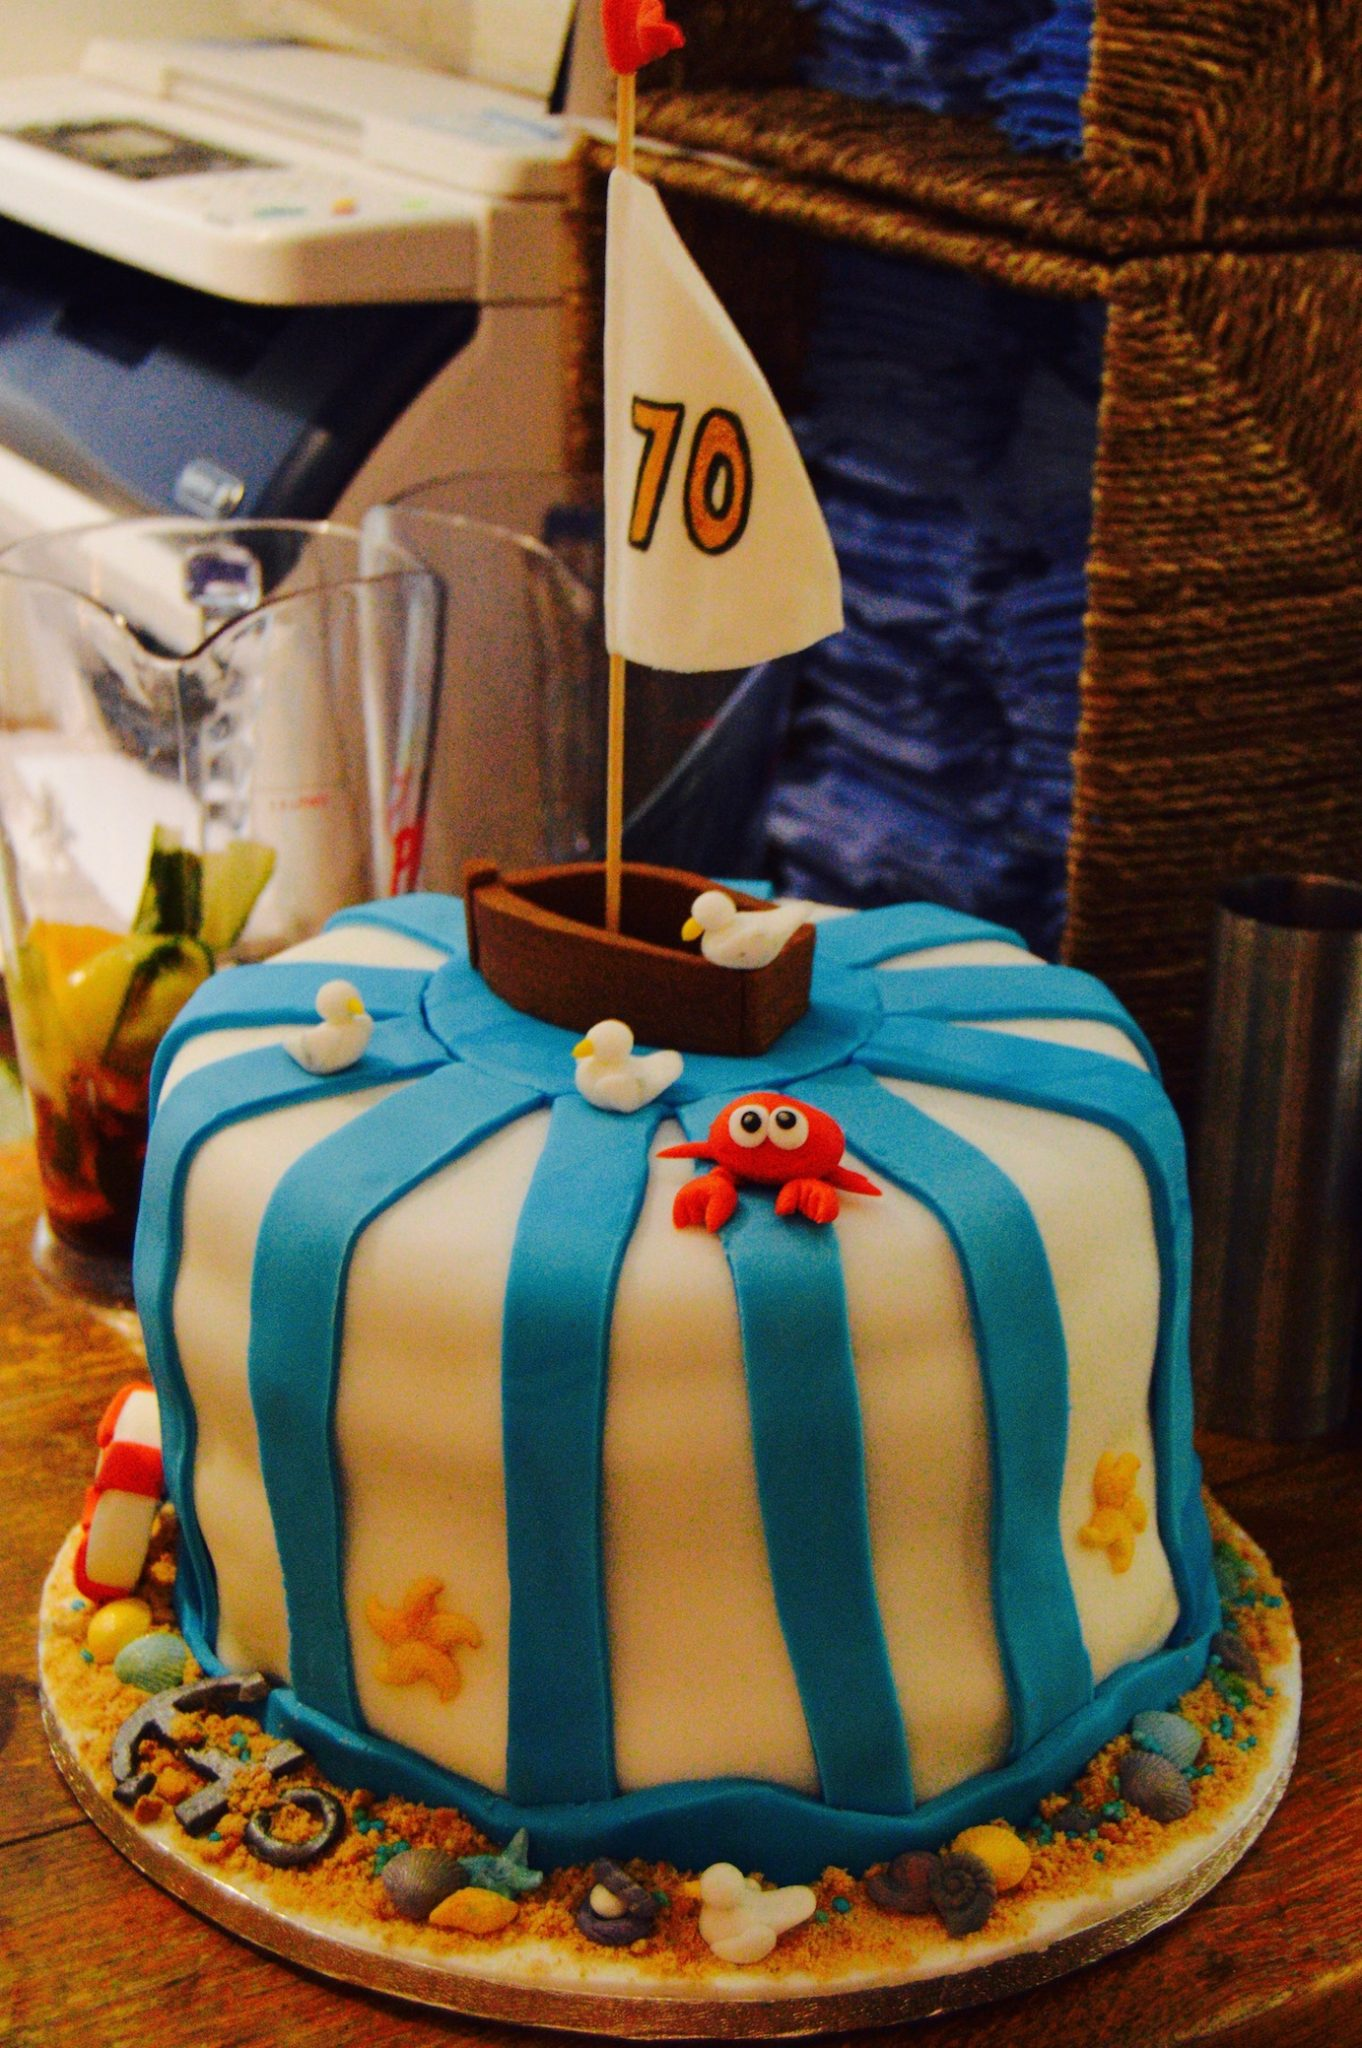 Marine Life 70th Birthday Cake